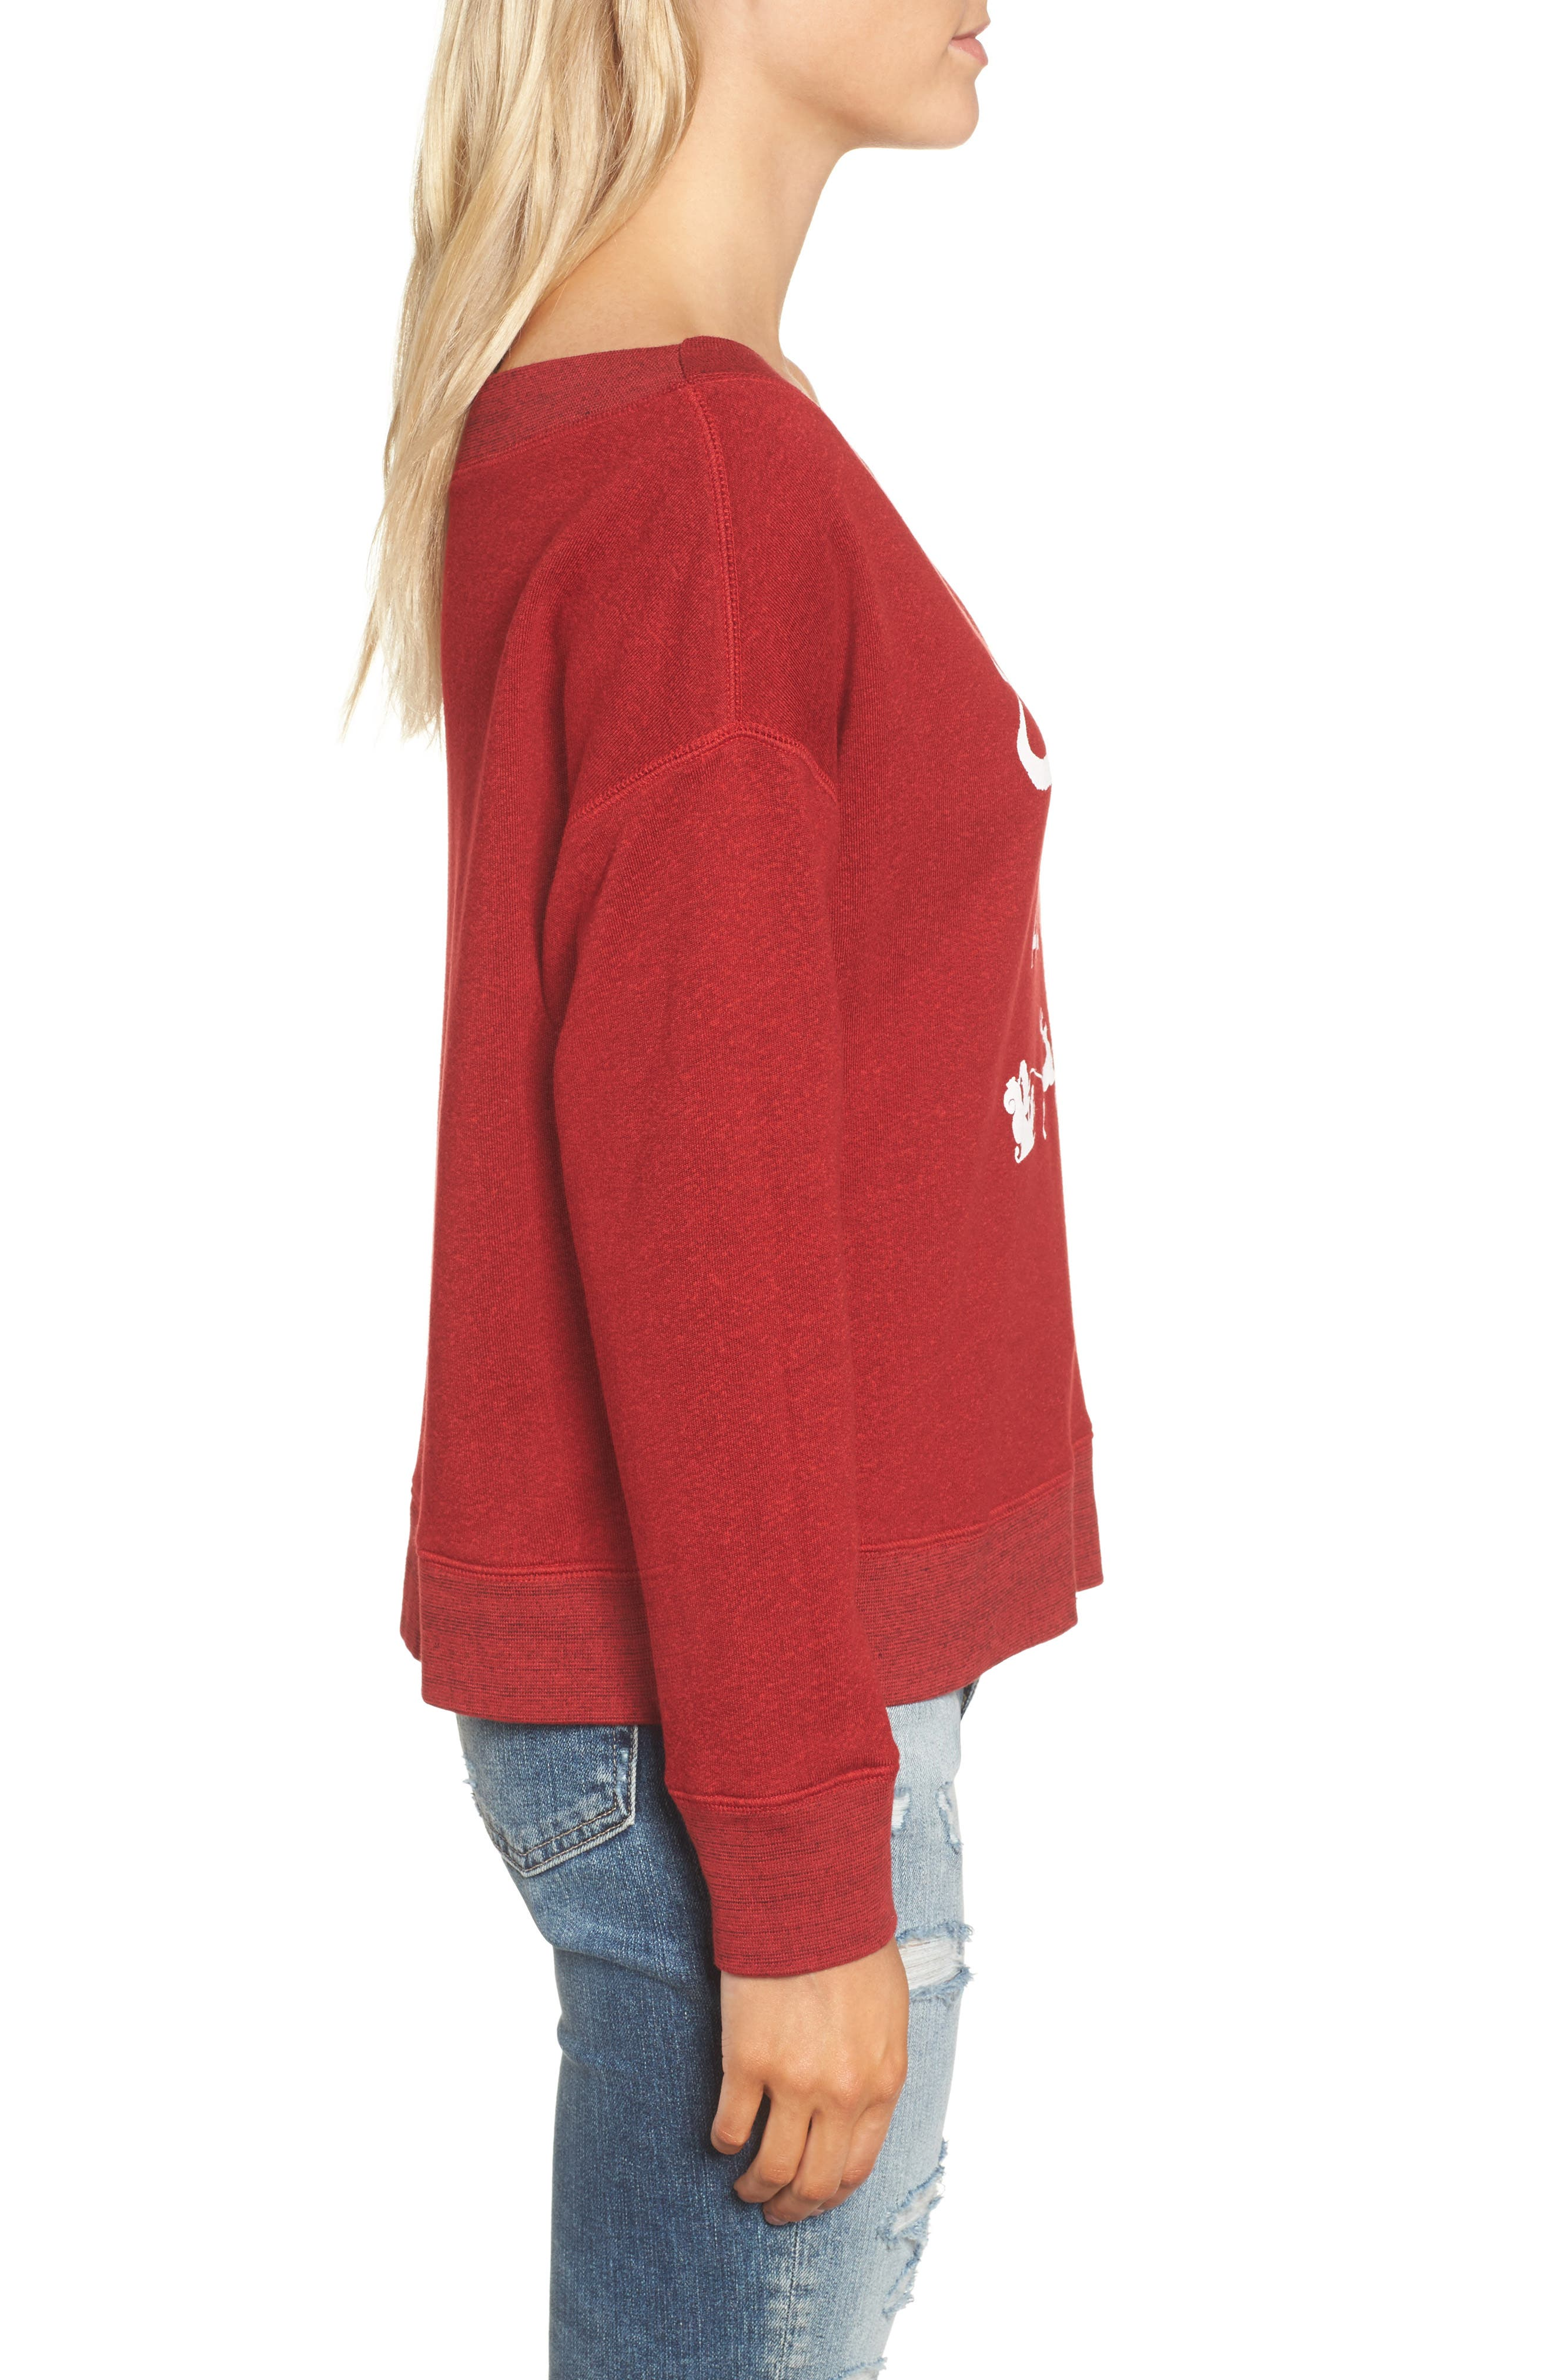 Sleigh All Day Sweatshirt,                             Alternate thumbnail 3, color,                             604